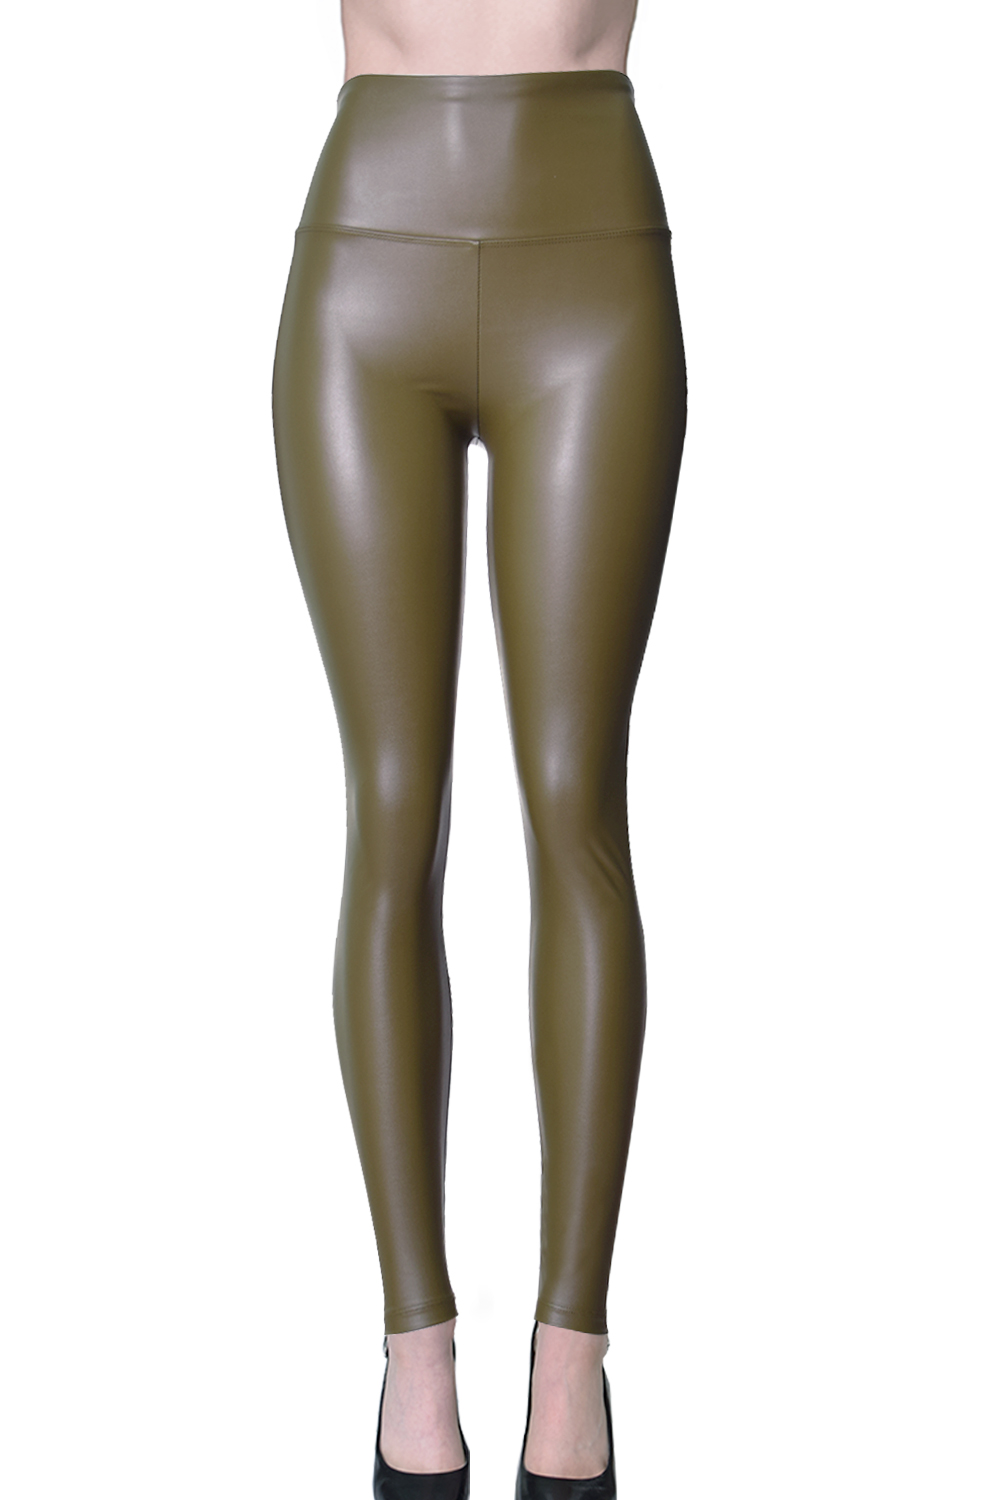 9932ee1c091e6 ViV Collection - VIV Collection Womens Sexy Tight Fit Faux Leather High  Waisted Leggings (Black, S) - Walmart.com